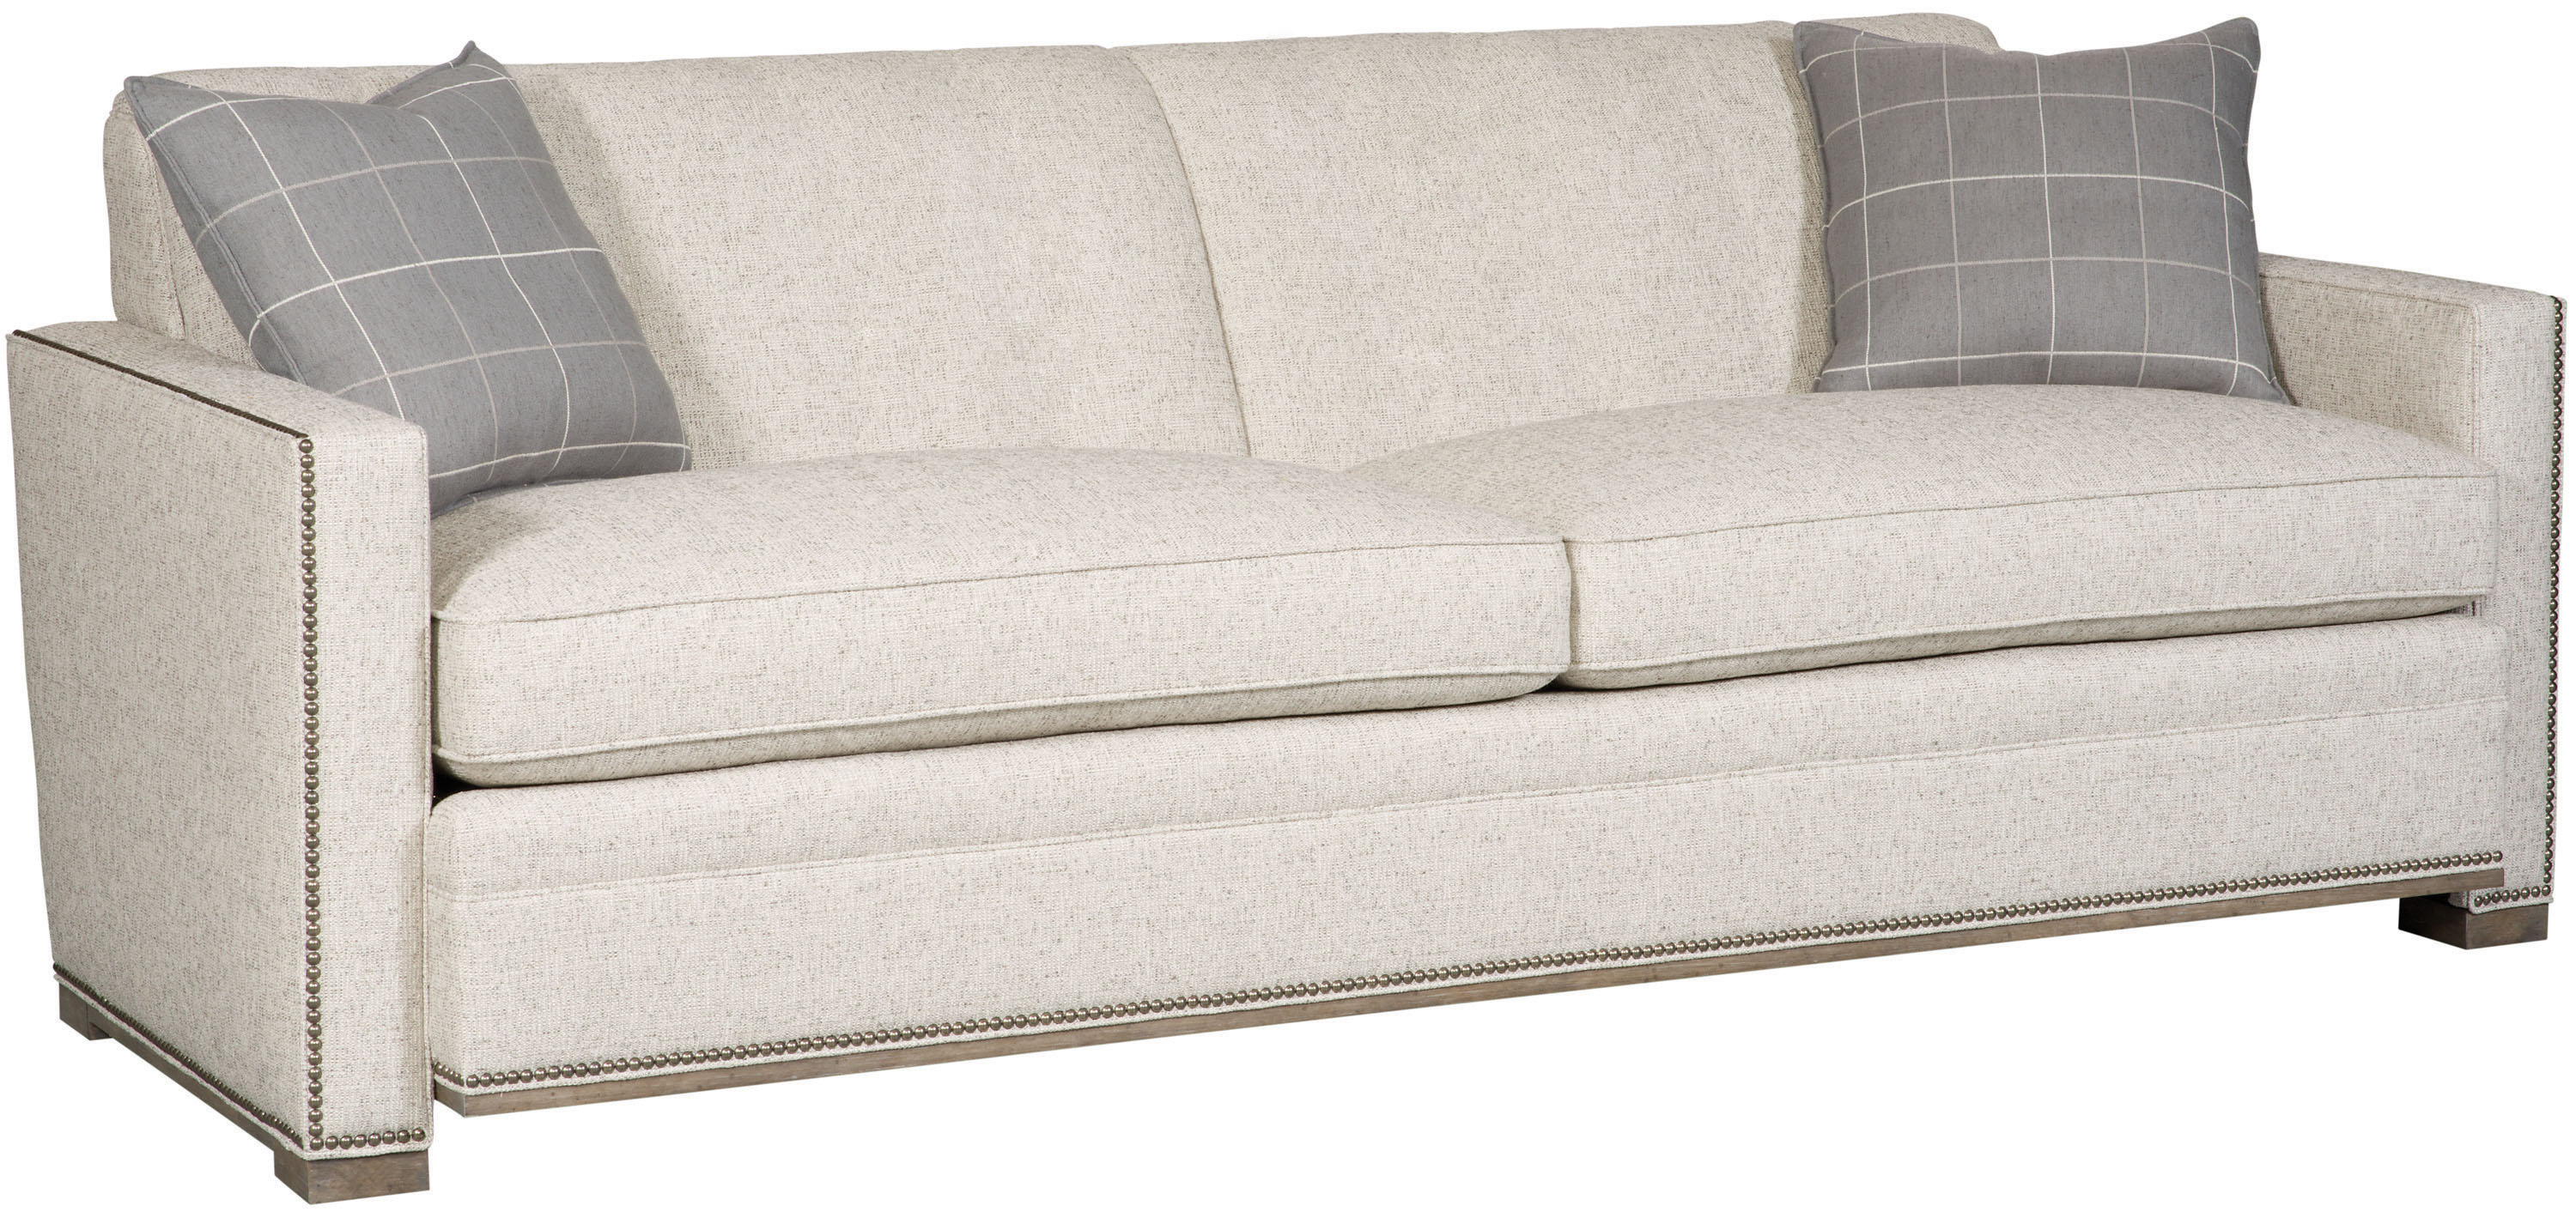 Garvey sofa w777 2s our products vanguard furniture for Furniture 777